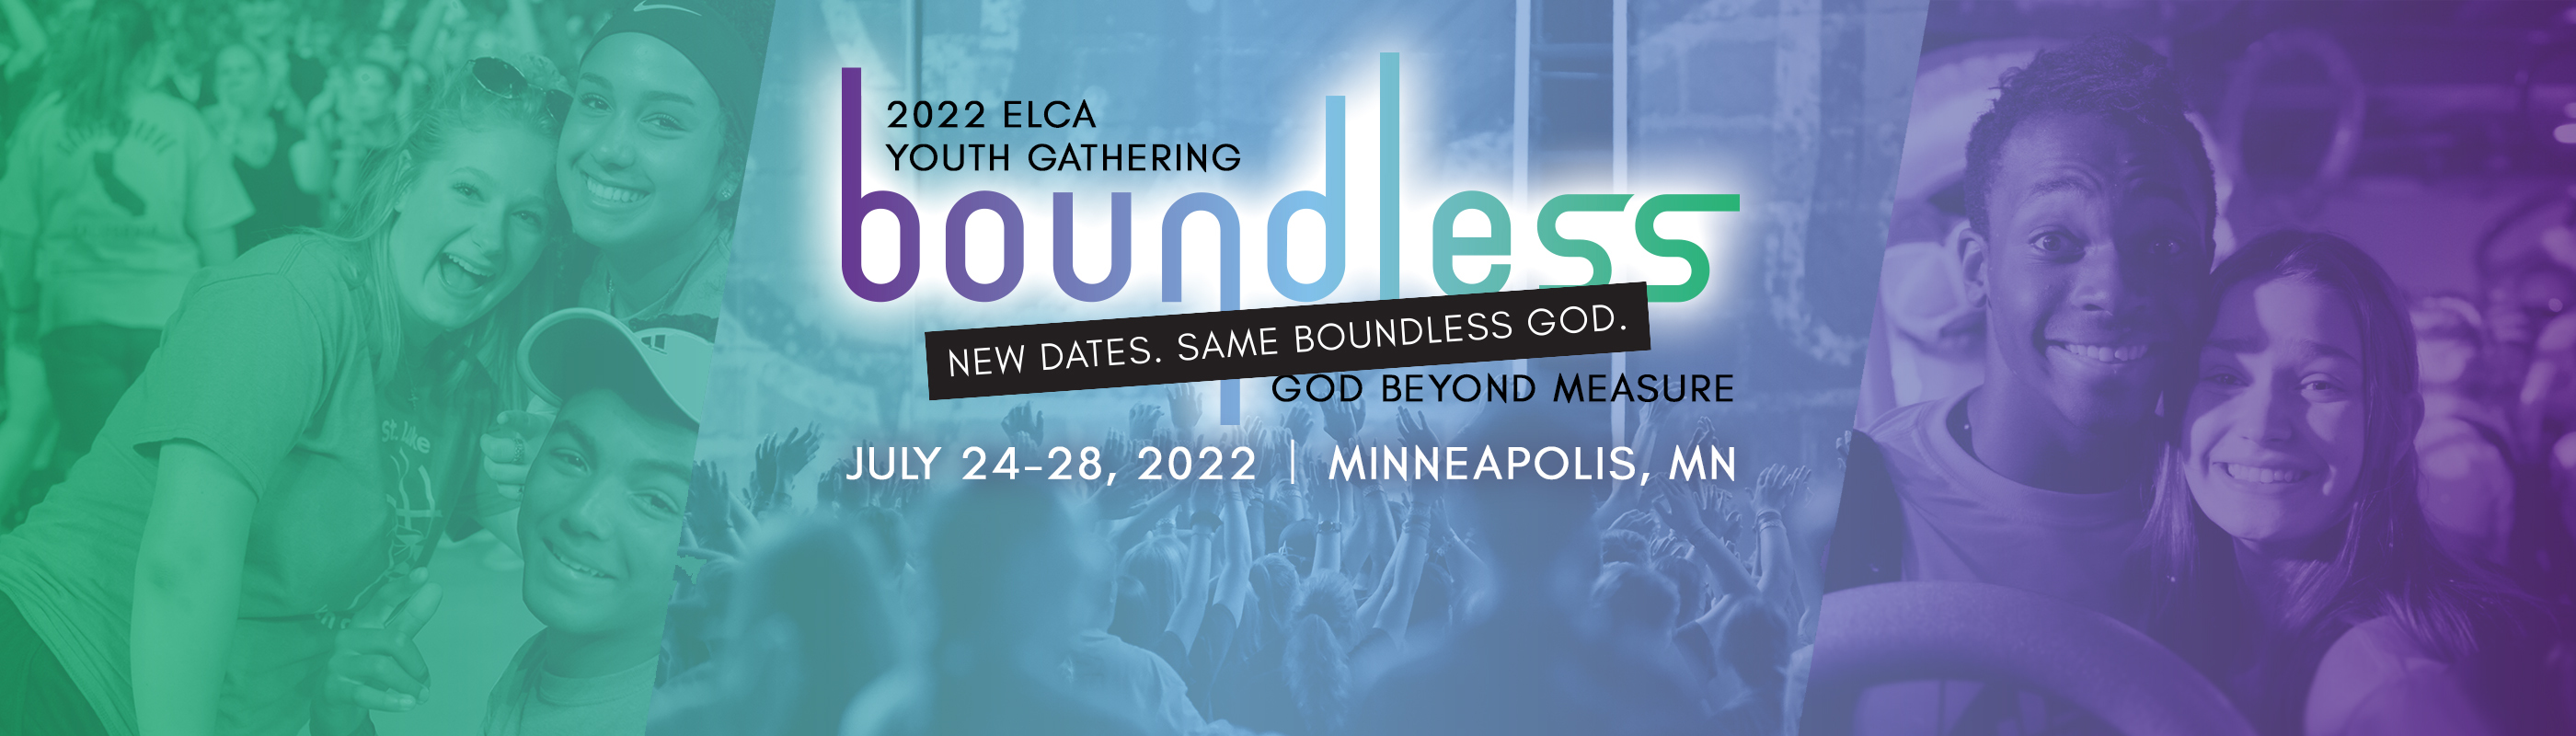 Support the ELCA Youth Gathering